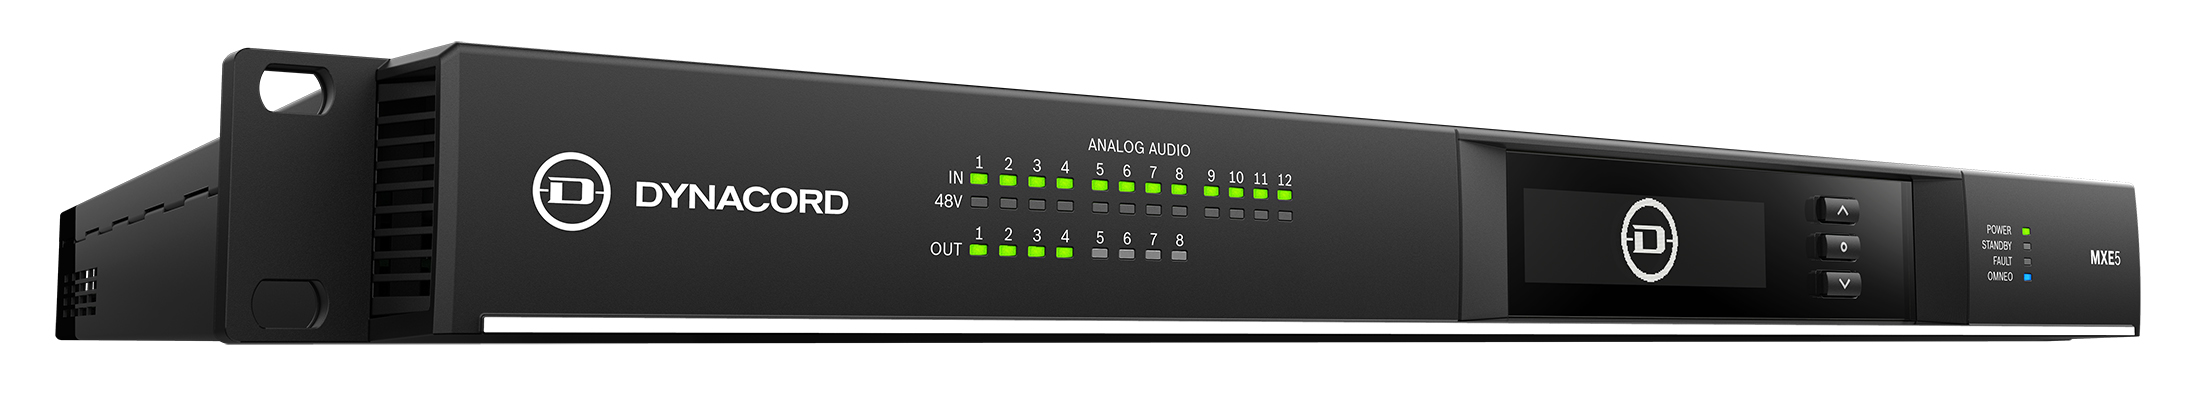 New Dynacord MXE features include: plug-ins for Crestron and Q-SYS control software; and Application Programming interface (API) for general integration into existing IP-based media and building control